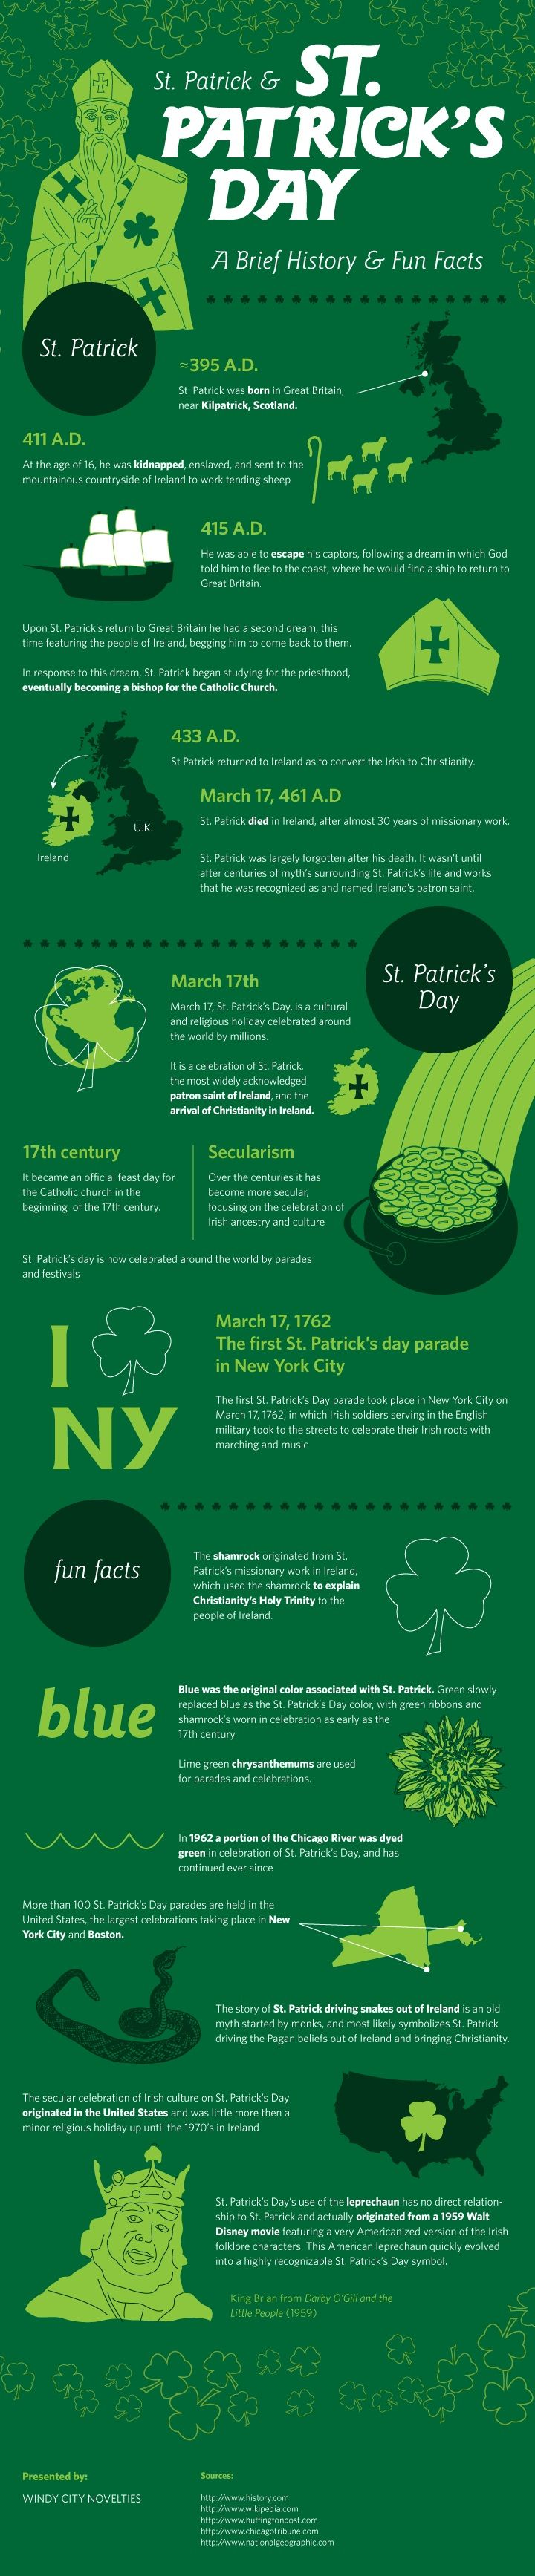 History lesson! St. Patrick & St. Patrick's Day: A Brief History & Fun Facts [INFOGRAPHIC]